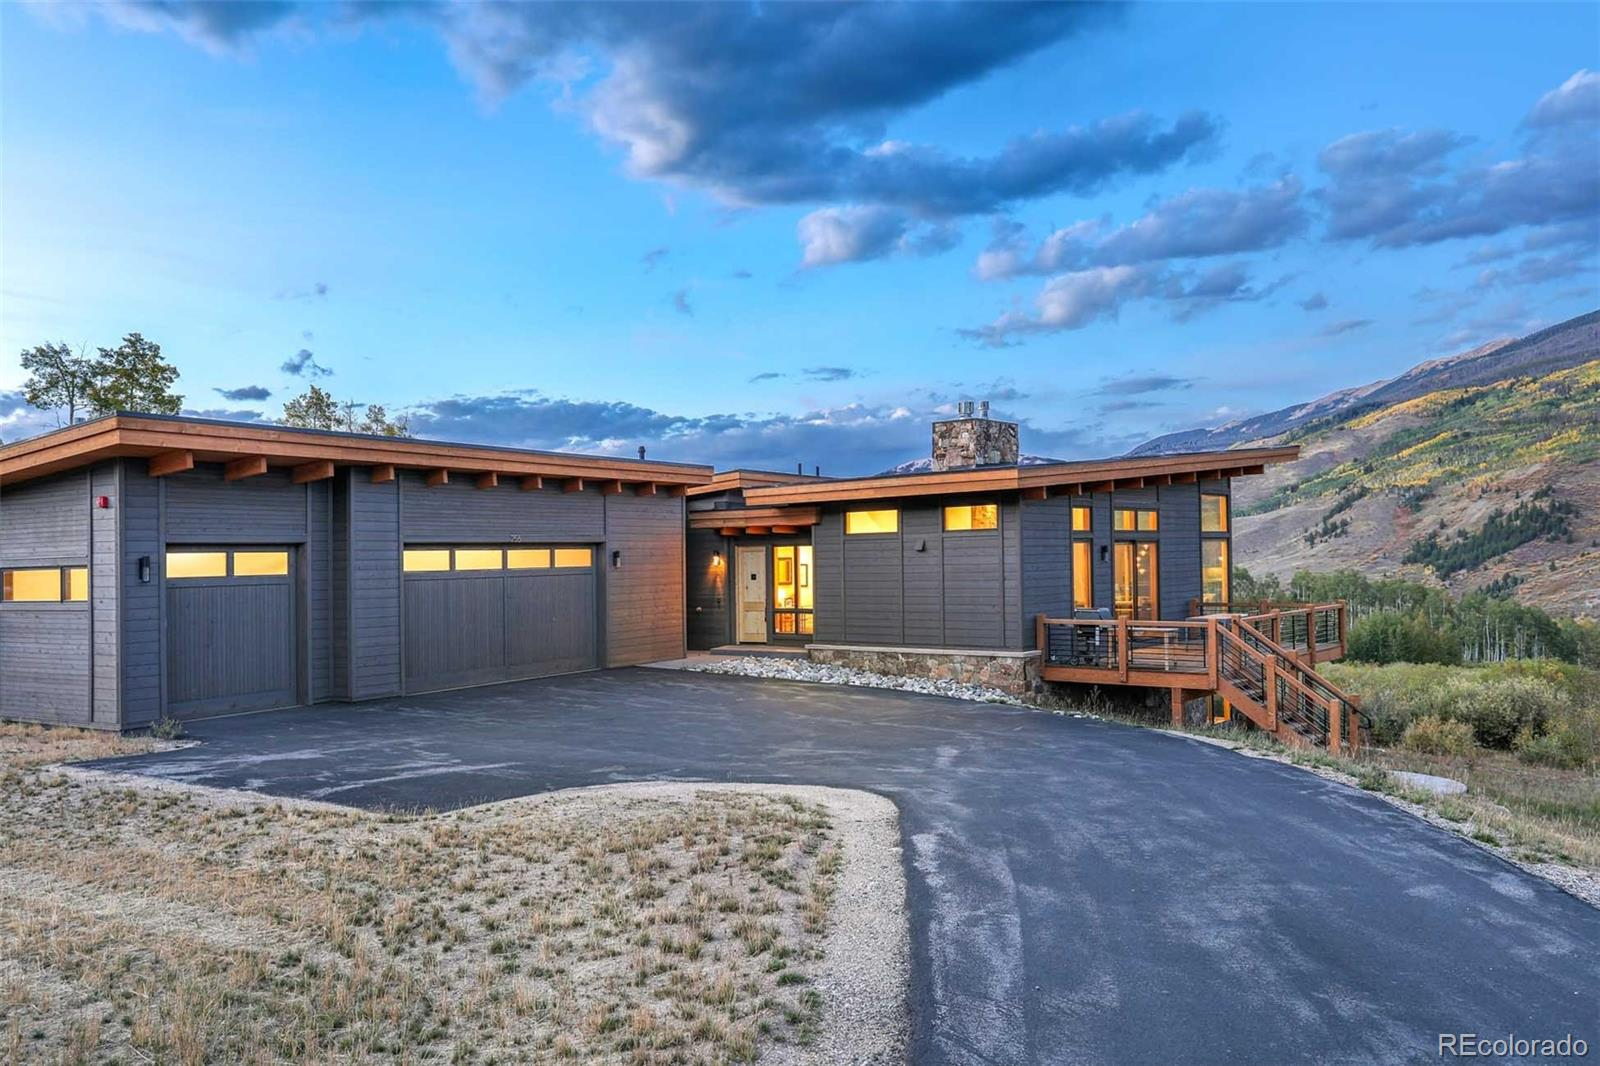 107 Beasley Road - Silverthorne, Colorado